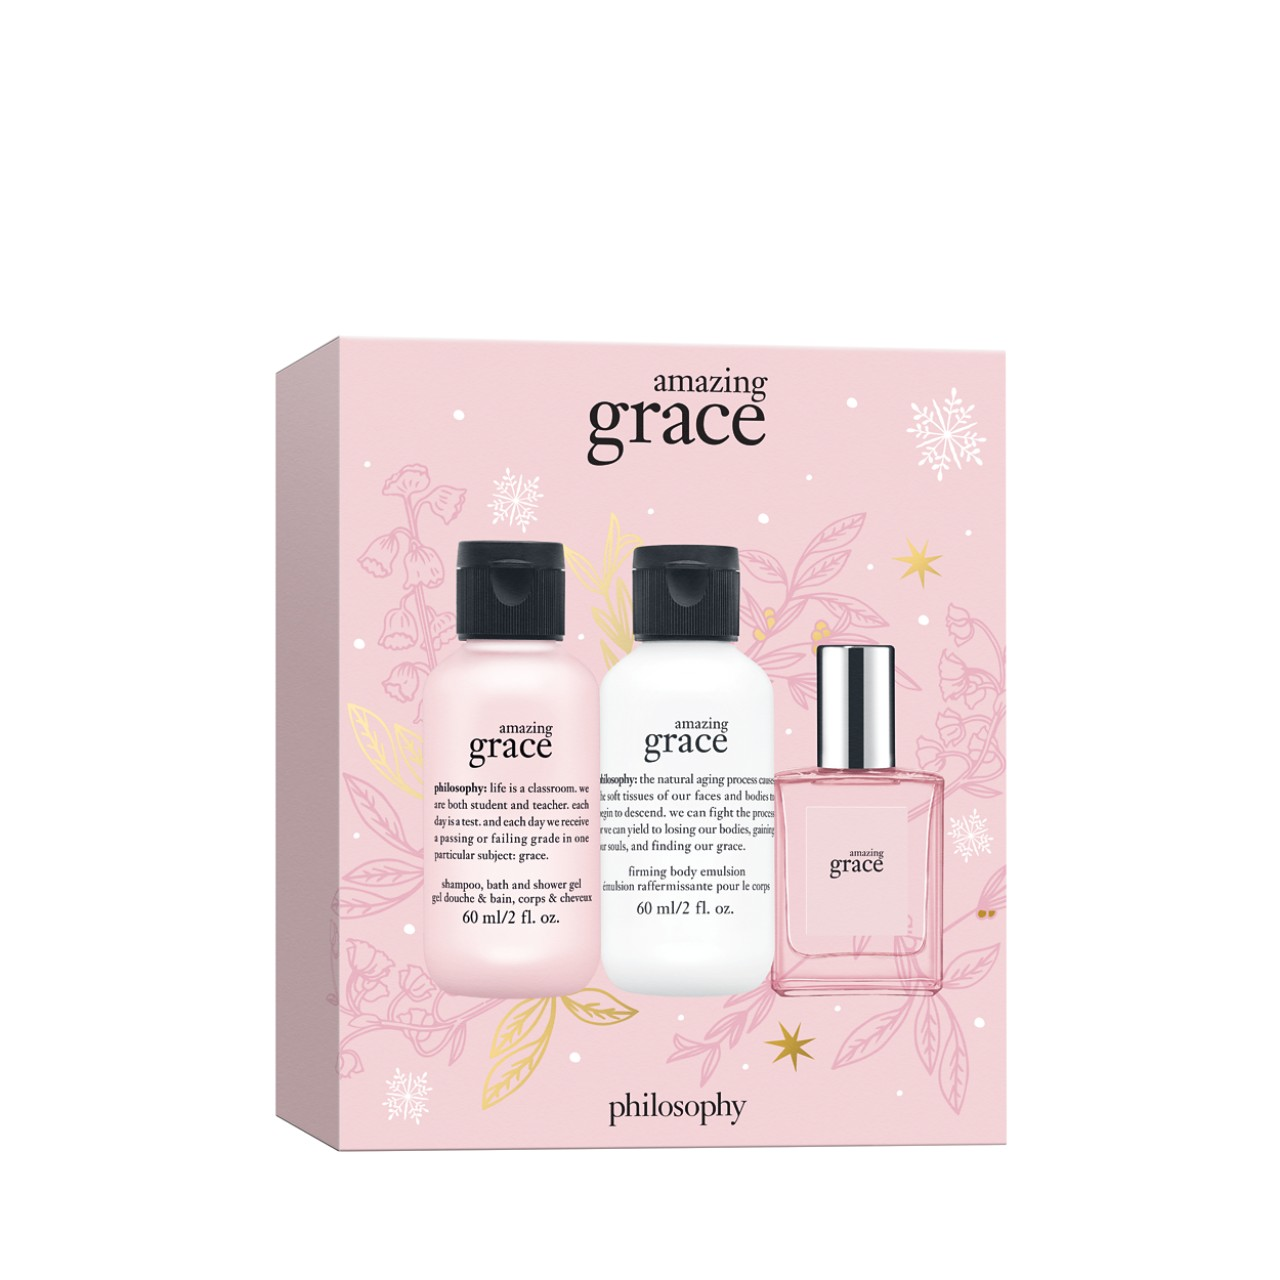 mini amazing grace mini shower gel, eau de toilette, & body lotion gift set